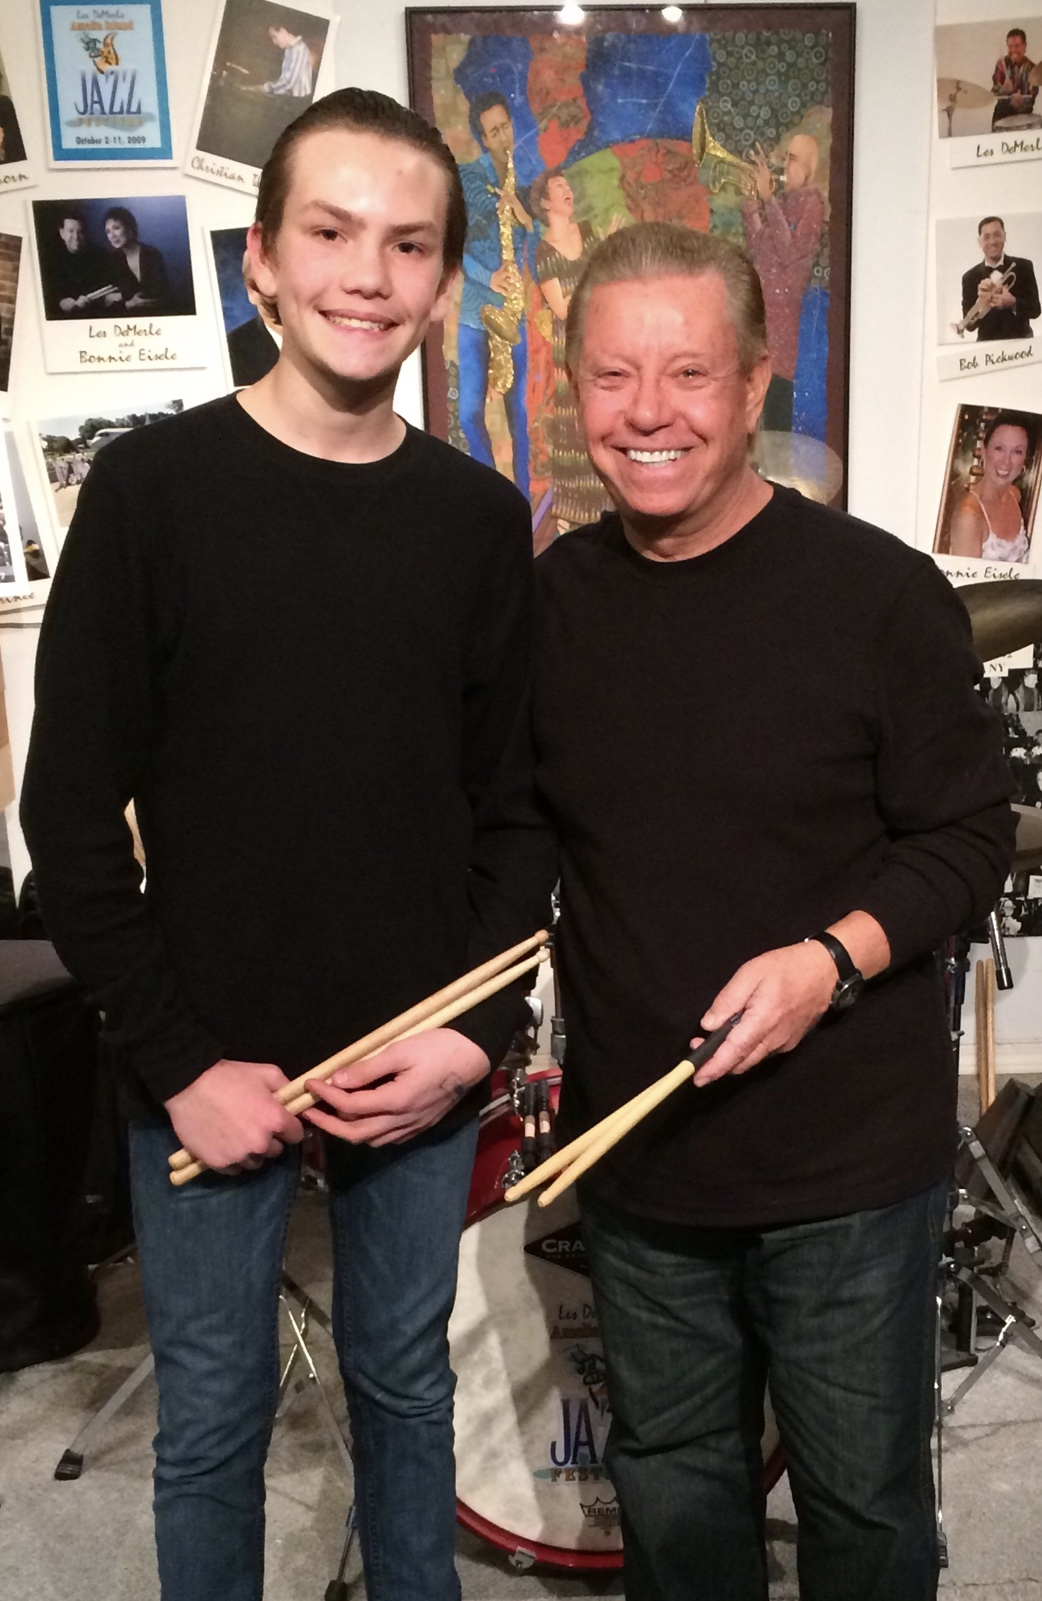 Hudson Kratochvil with Les DeMerle at the drum studio.